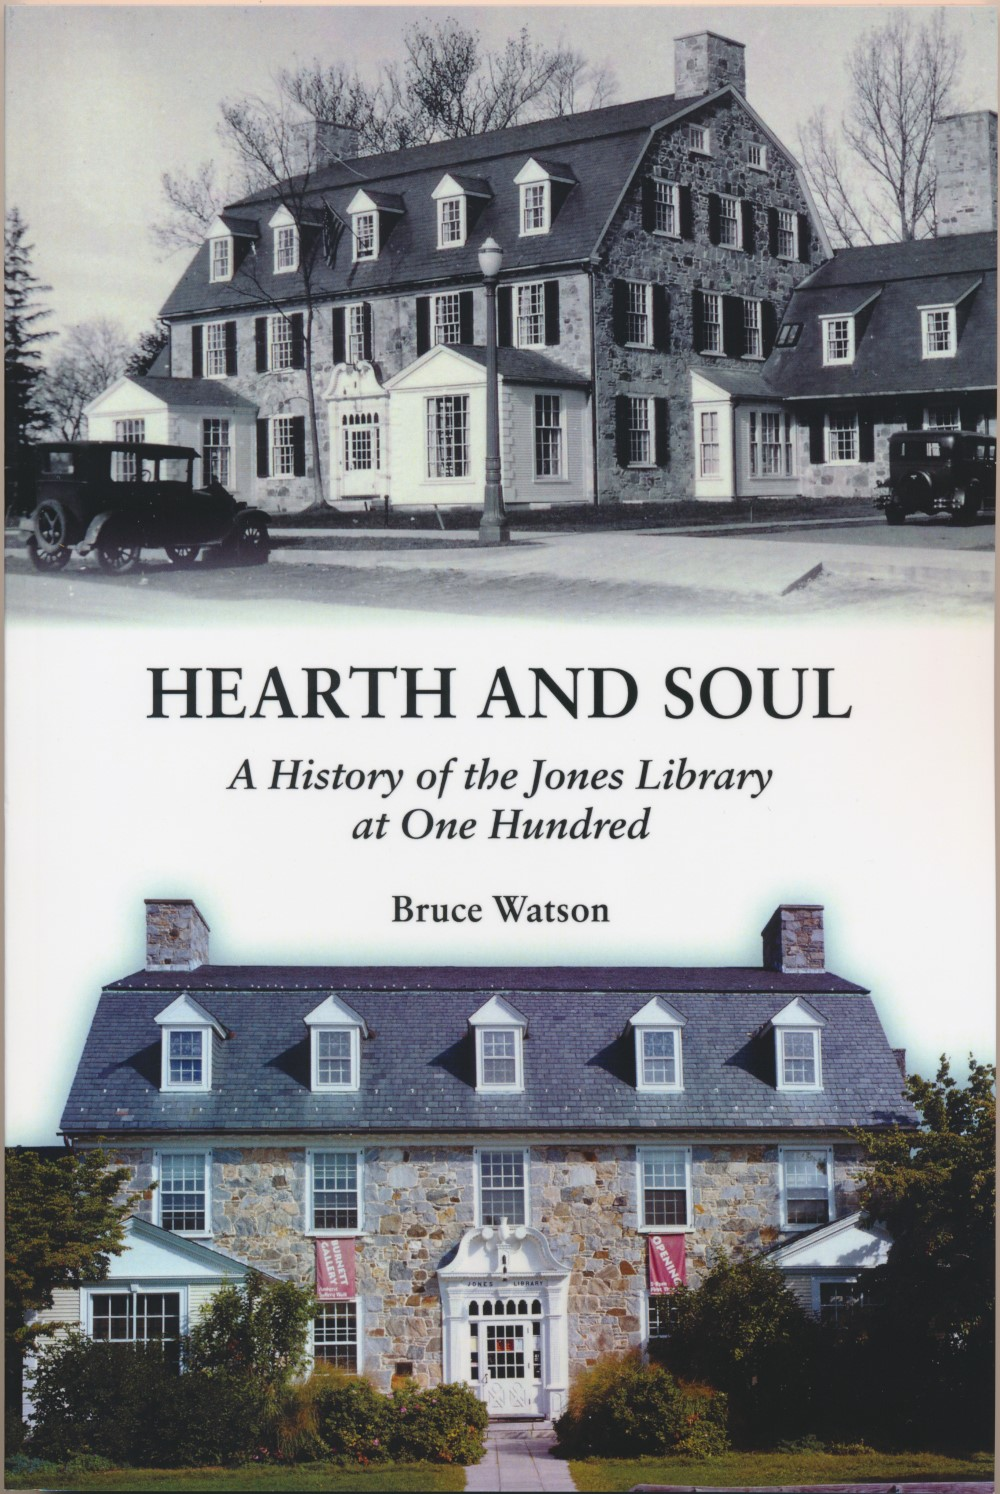 Hearth and Soul: The Jones Library at 100